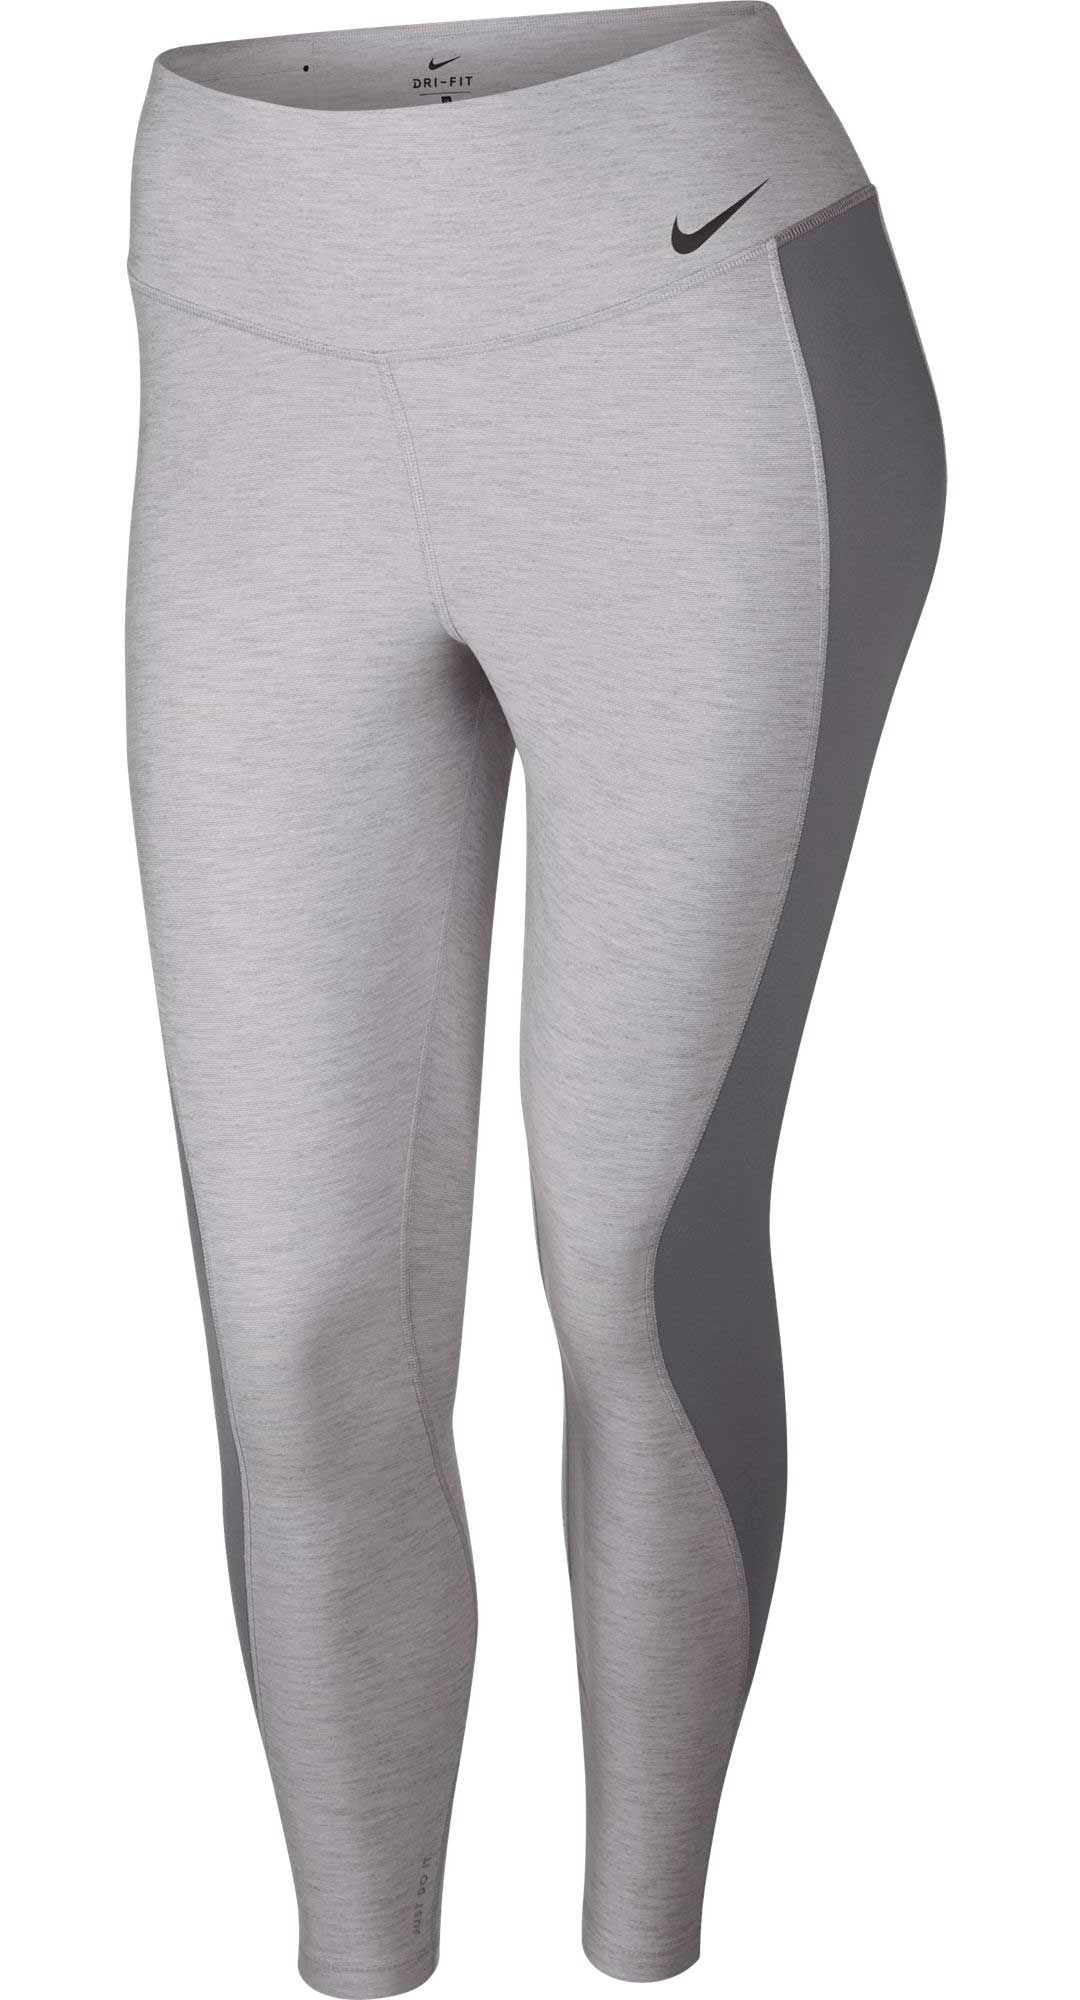 63bda453ca4d24 Nike Women's Plus Size Power Legend Training Tights | DICK'S ...